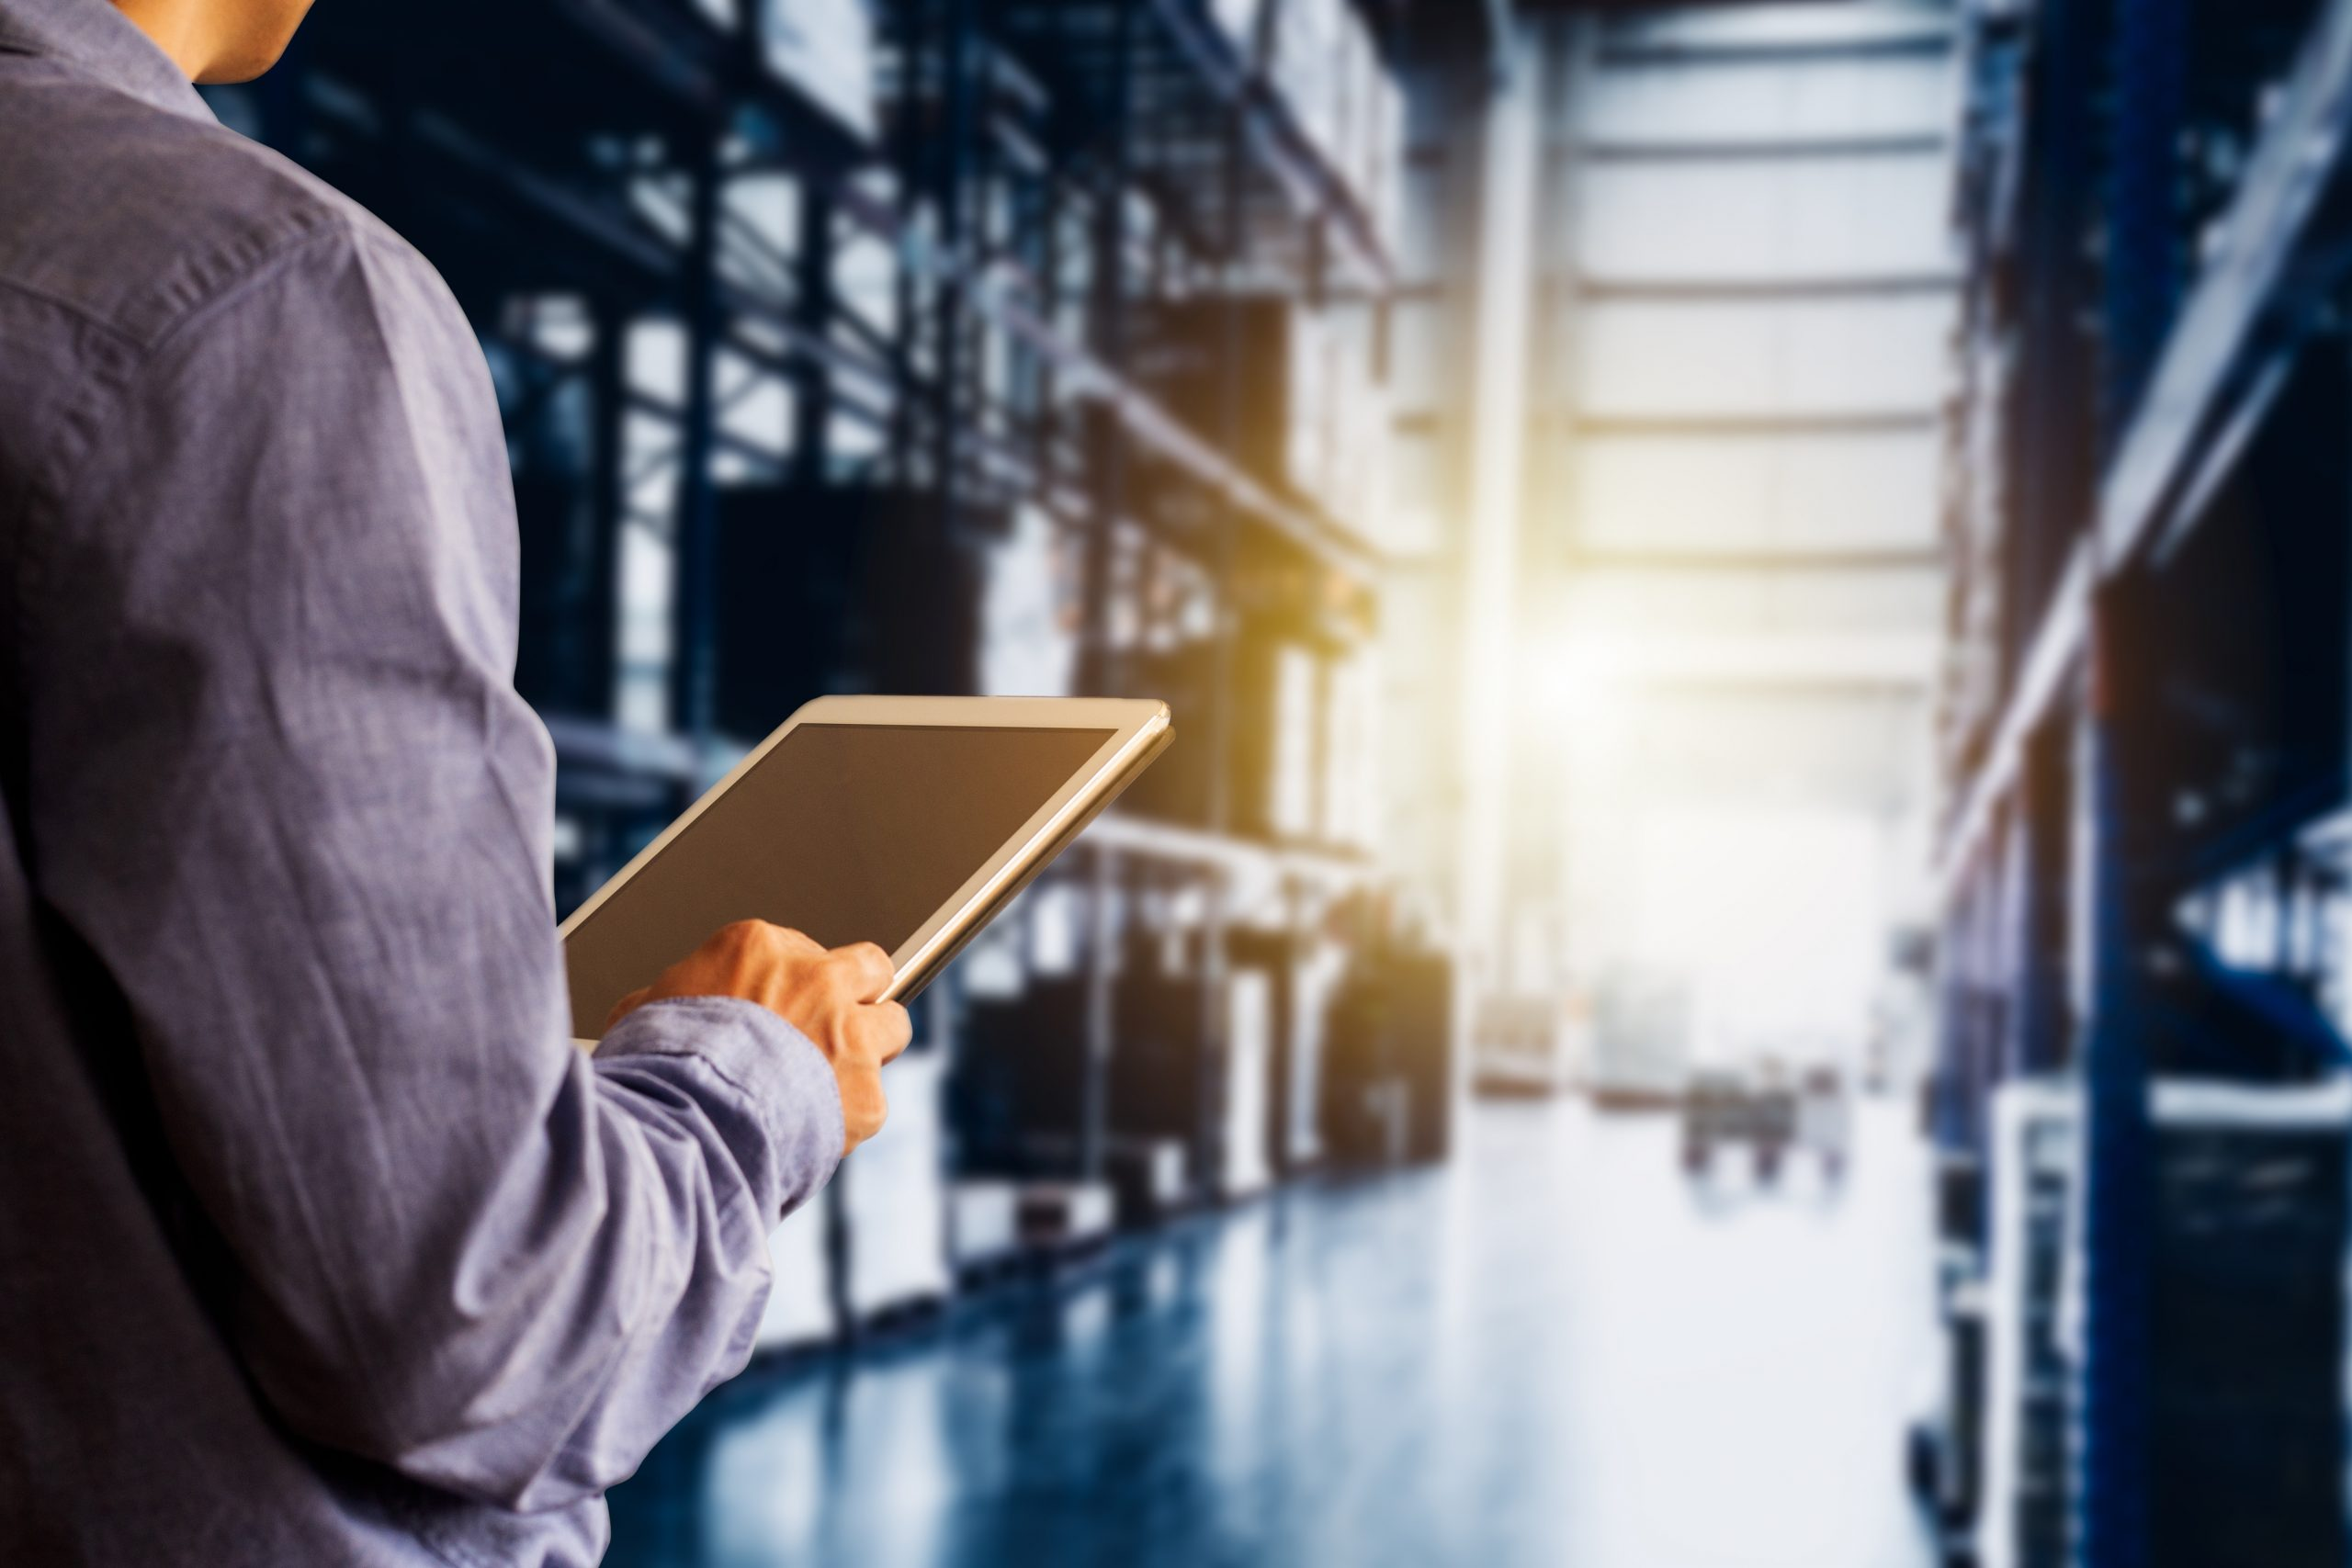 man looking at computer software in warehouse